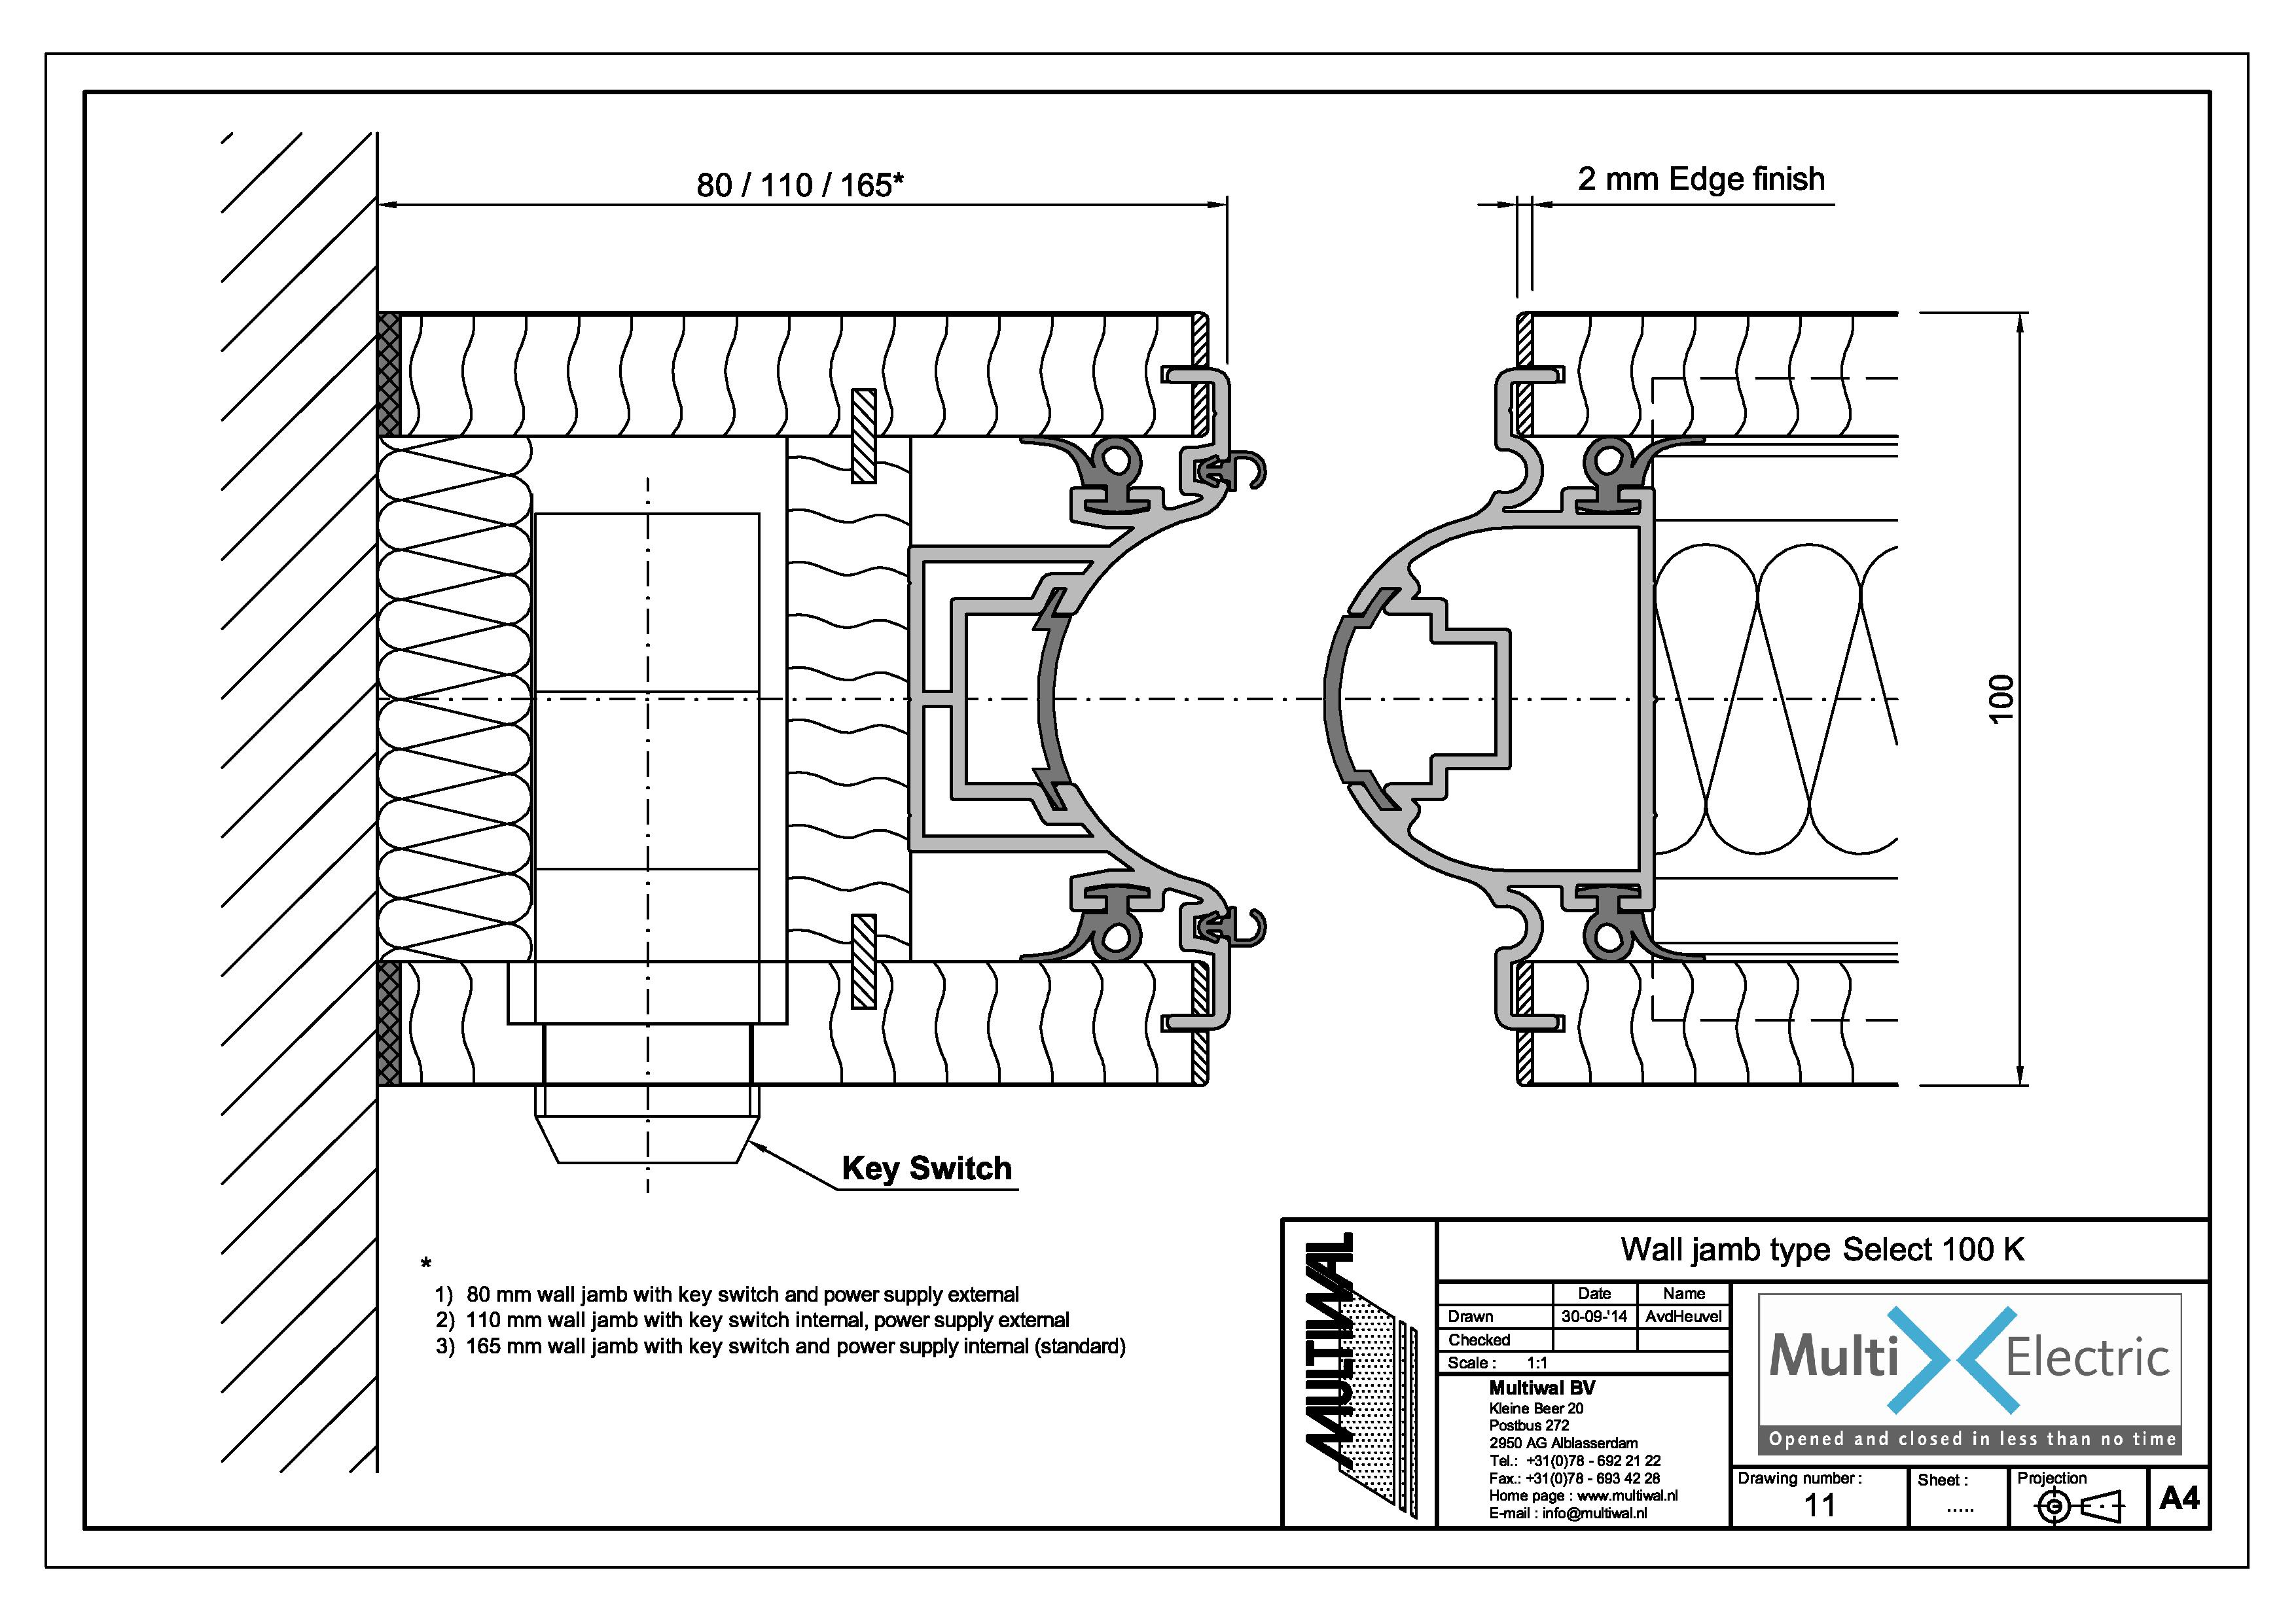 wiring diagram standards afc neo sr20det electrical drawing numbering  the